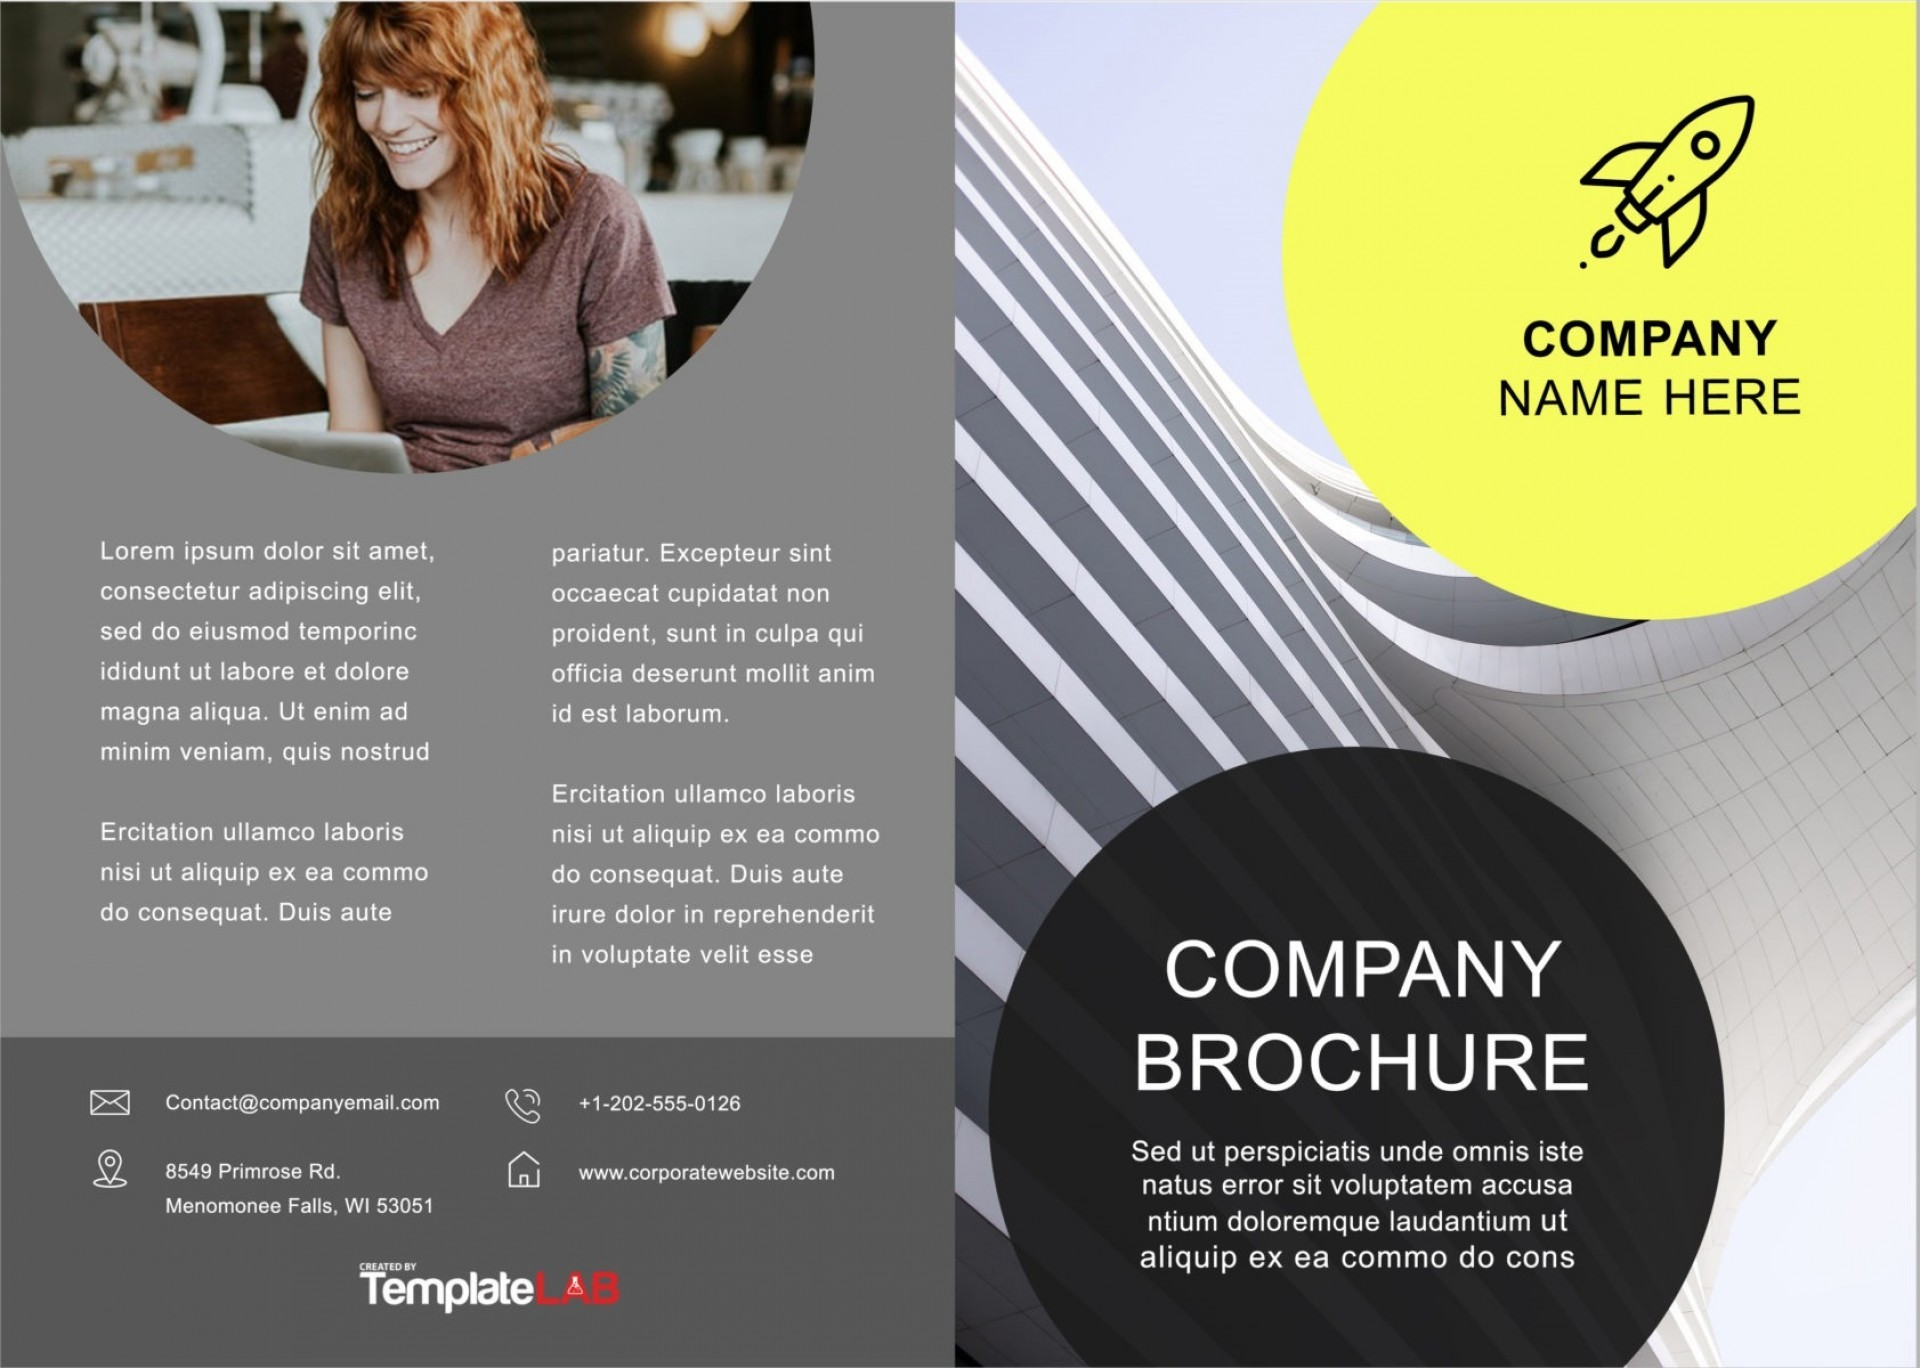 004 Unusual Free Online Brochure Template Photo  Templates Download Microsoft Word Real Estate1920